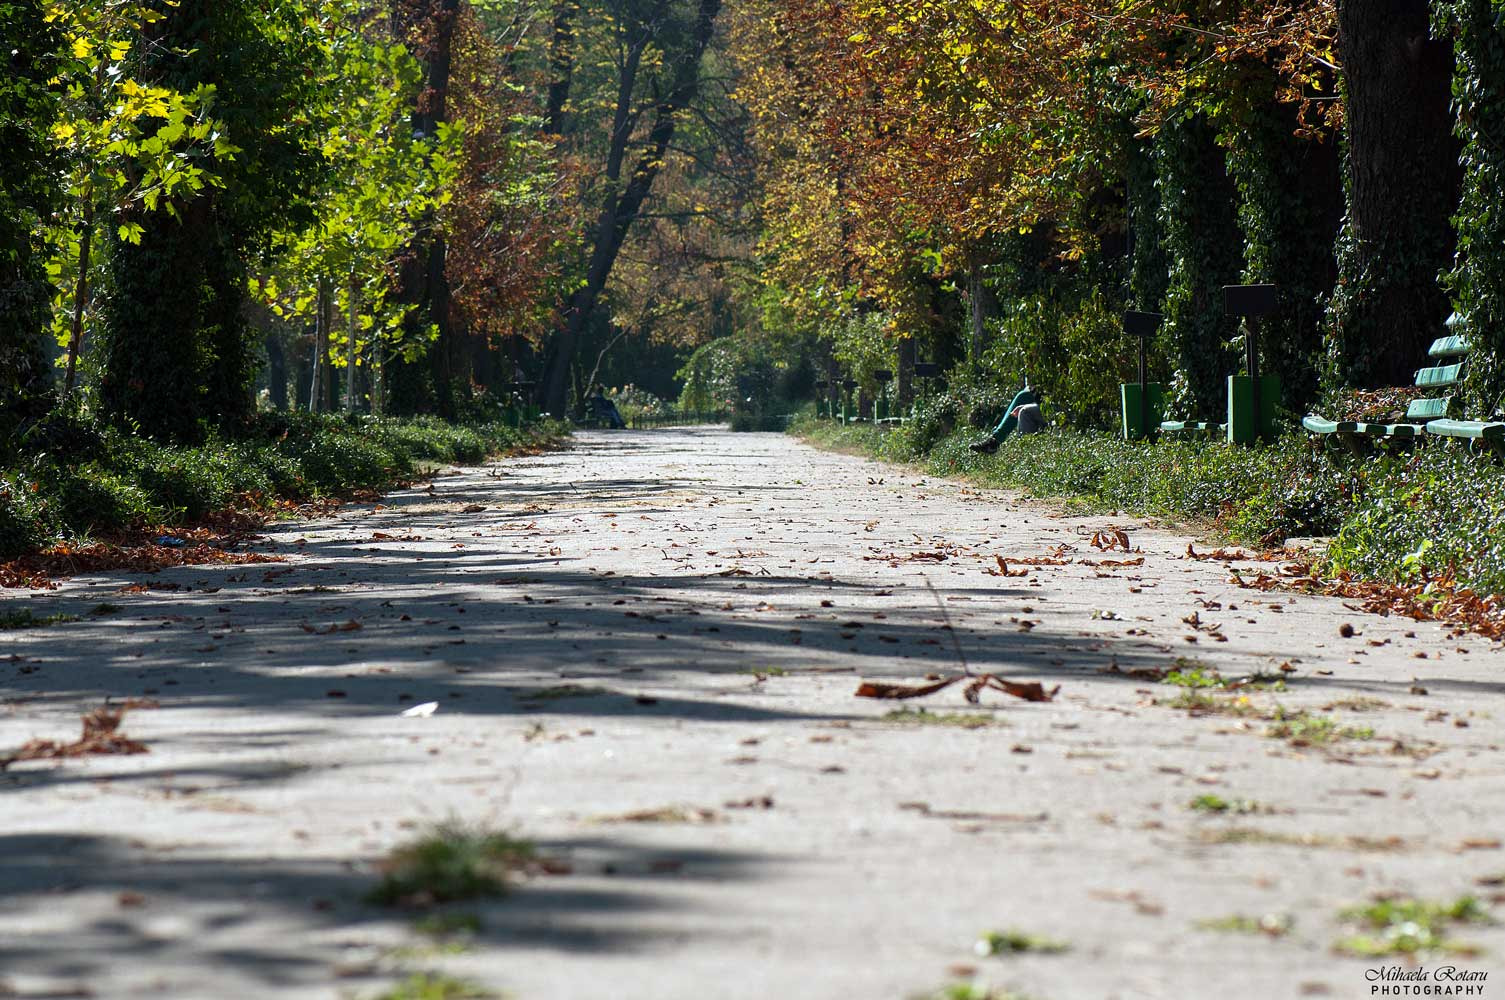 Photograph The path by Mihaela Rotaru on 500px